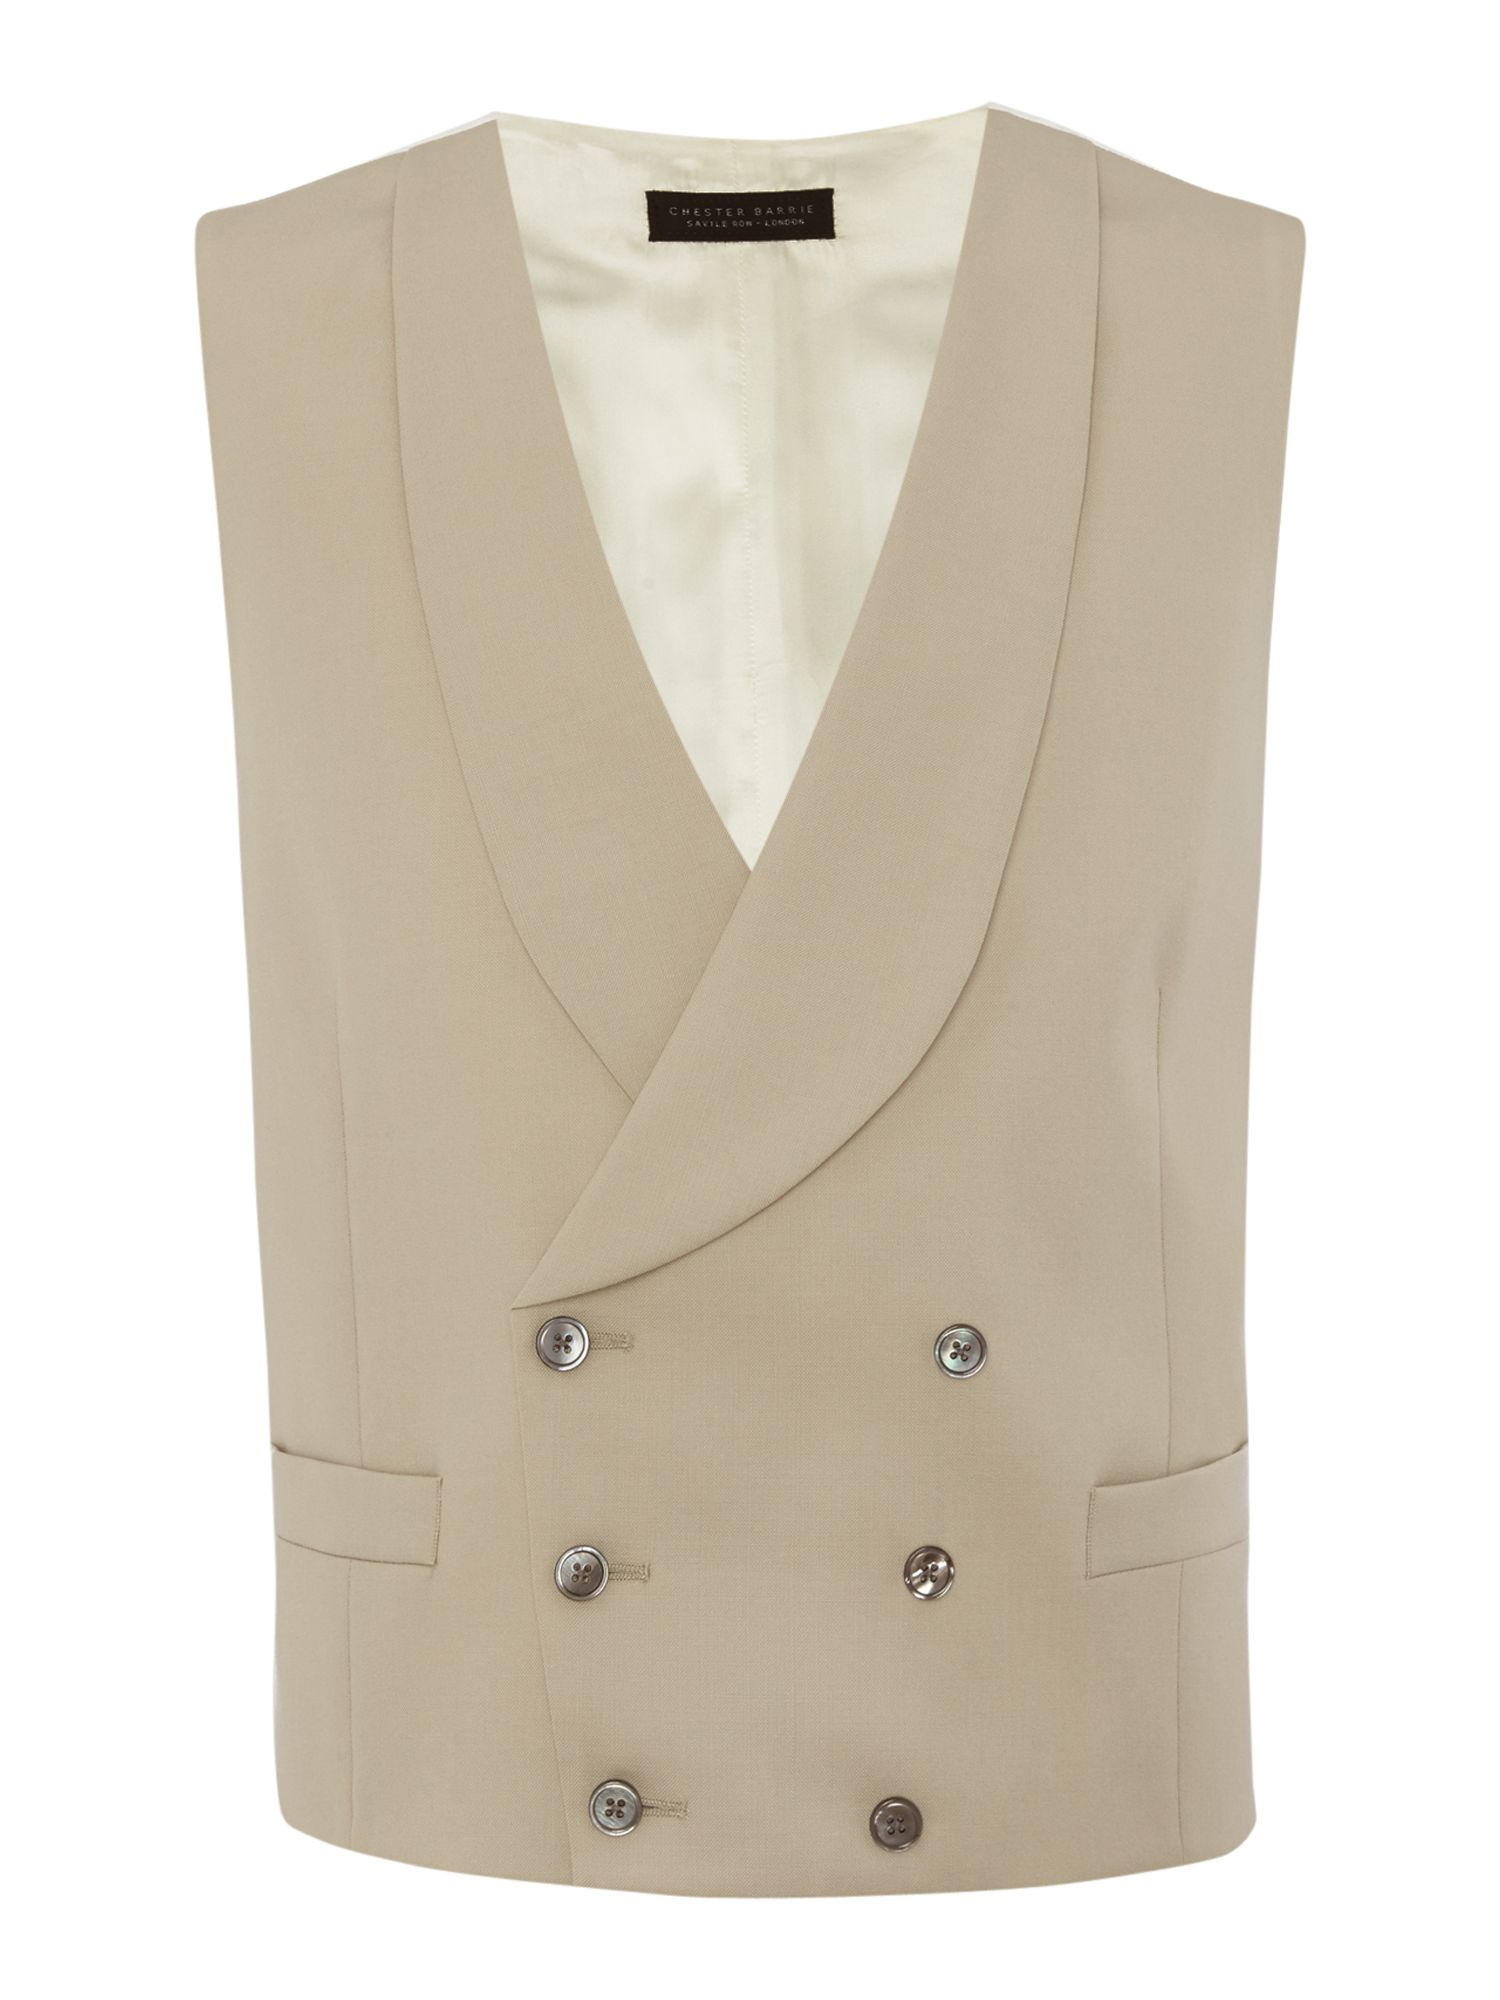 1900s Edwardian Men's Suits and Coats Mens Chester Barrie Plain Tailored Fit Waistcoat £78.00 AT vintagedancer.com